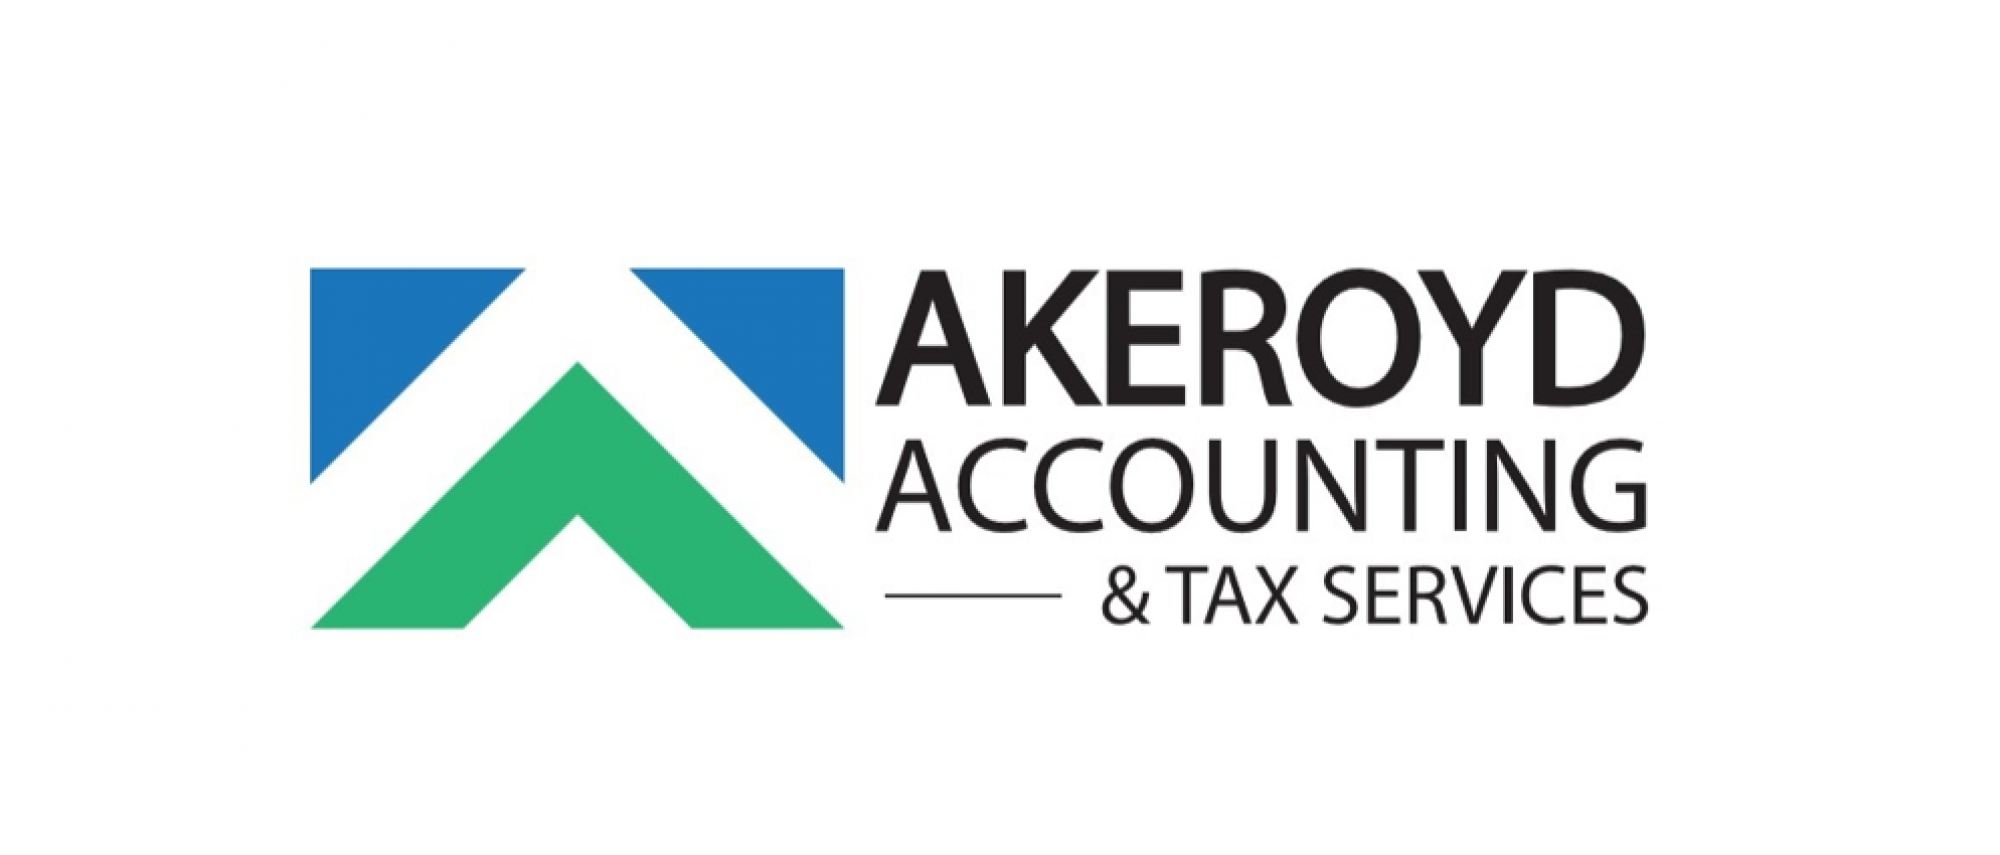 Akeroyd Accounting and Tax Services